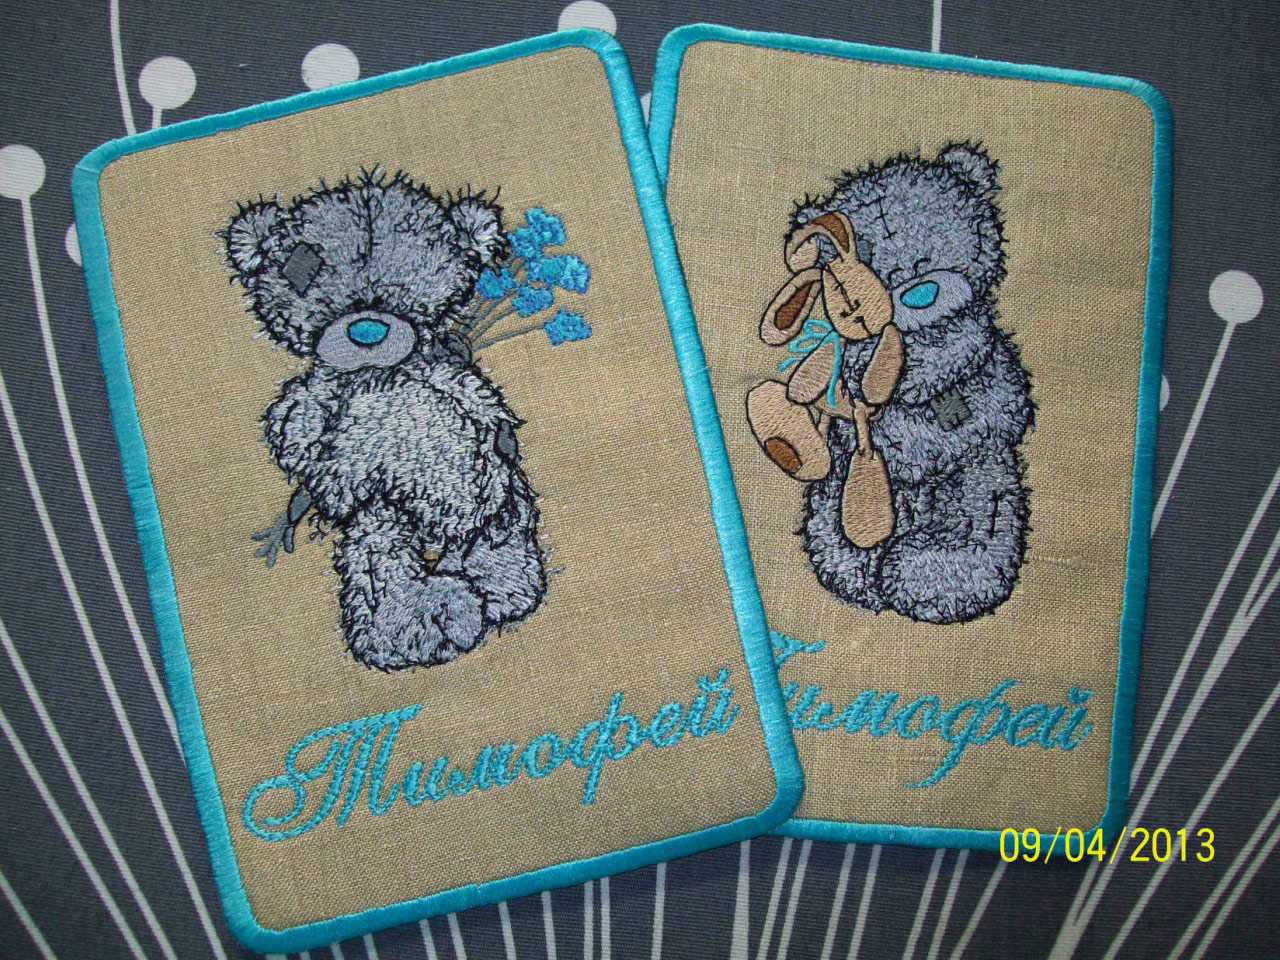 Blue nose bears embroidered on covers